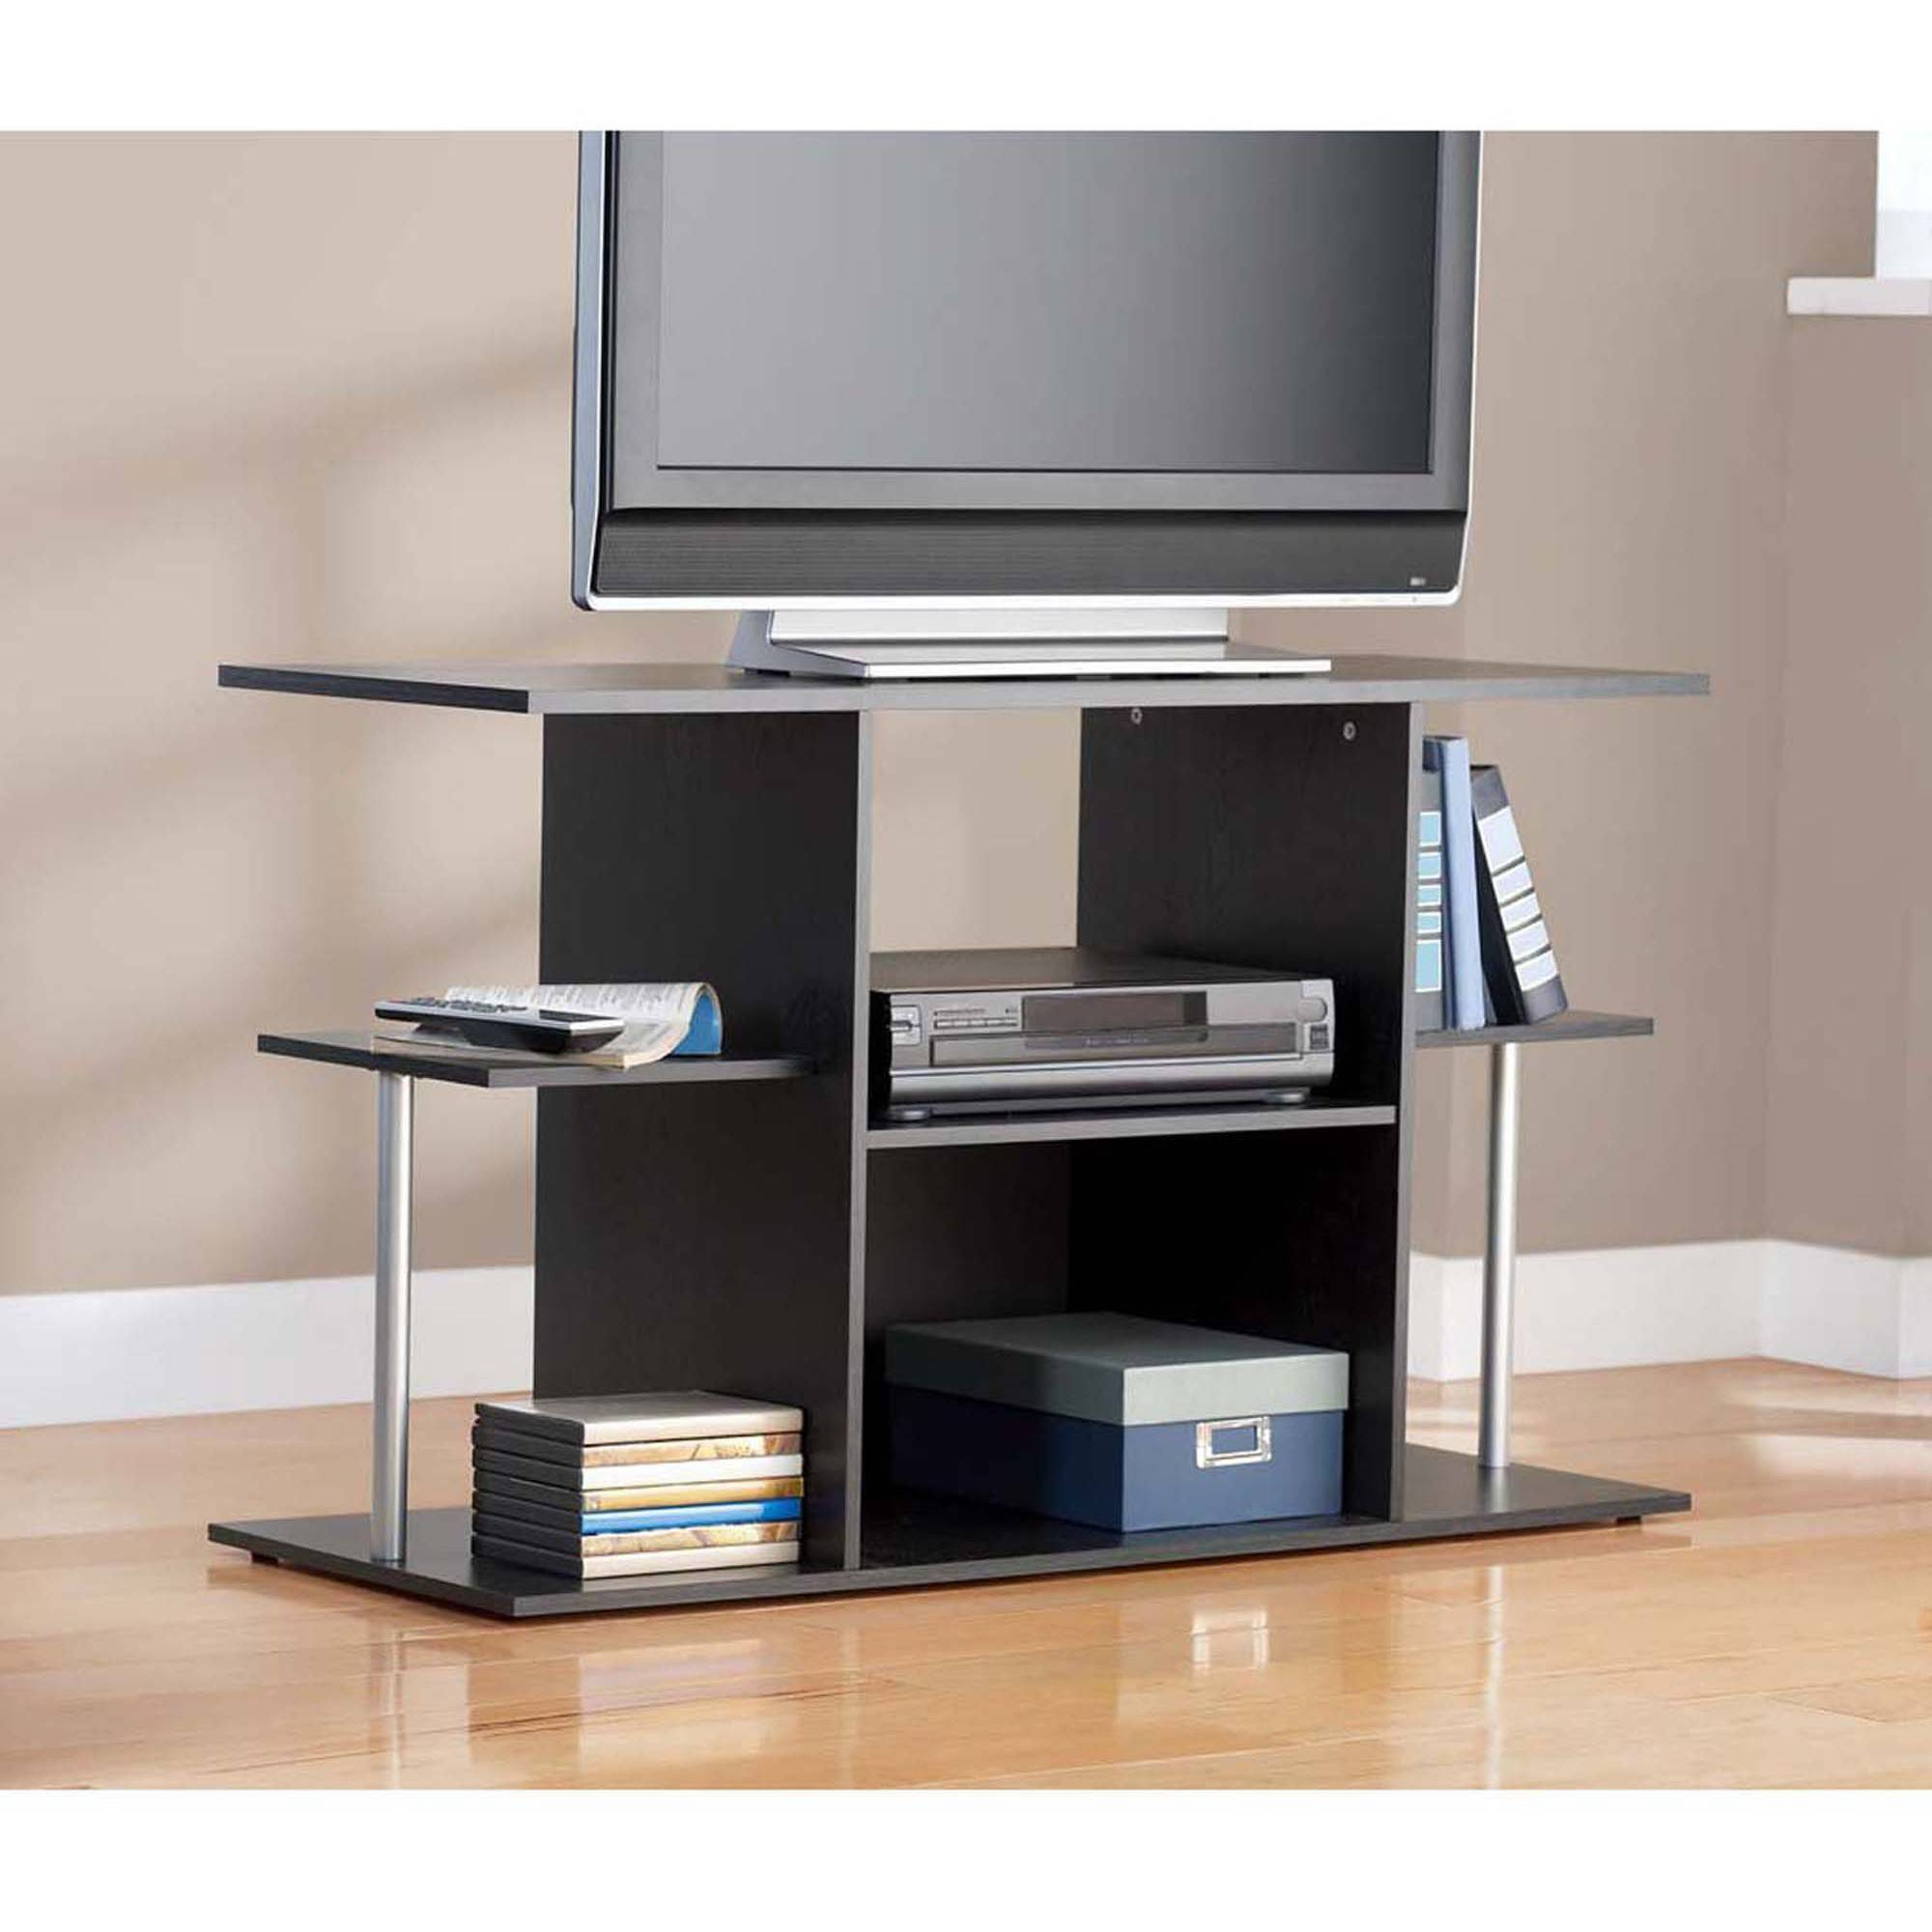 "Mainstays TV Stand for TVs up to 42"", Black"